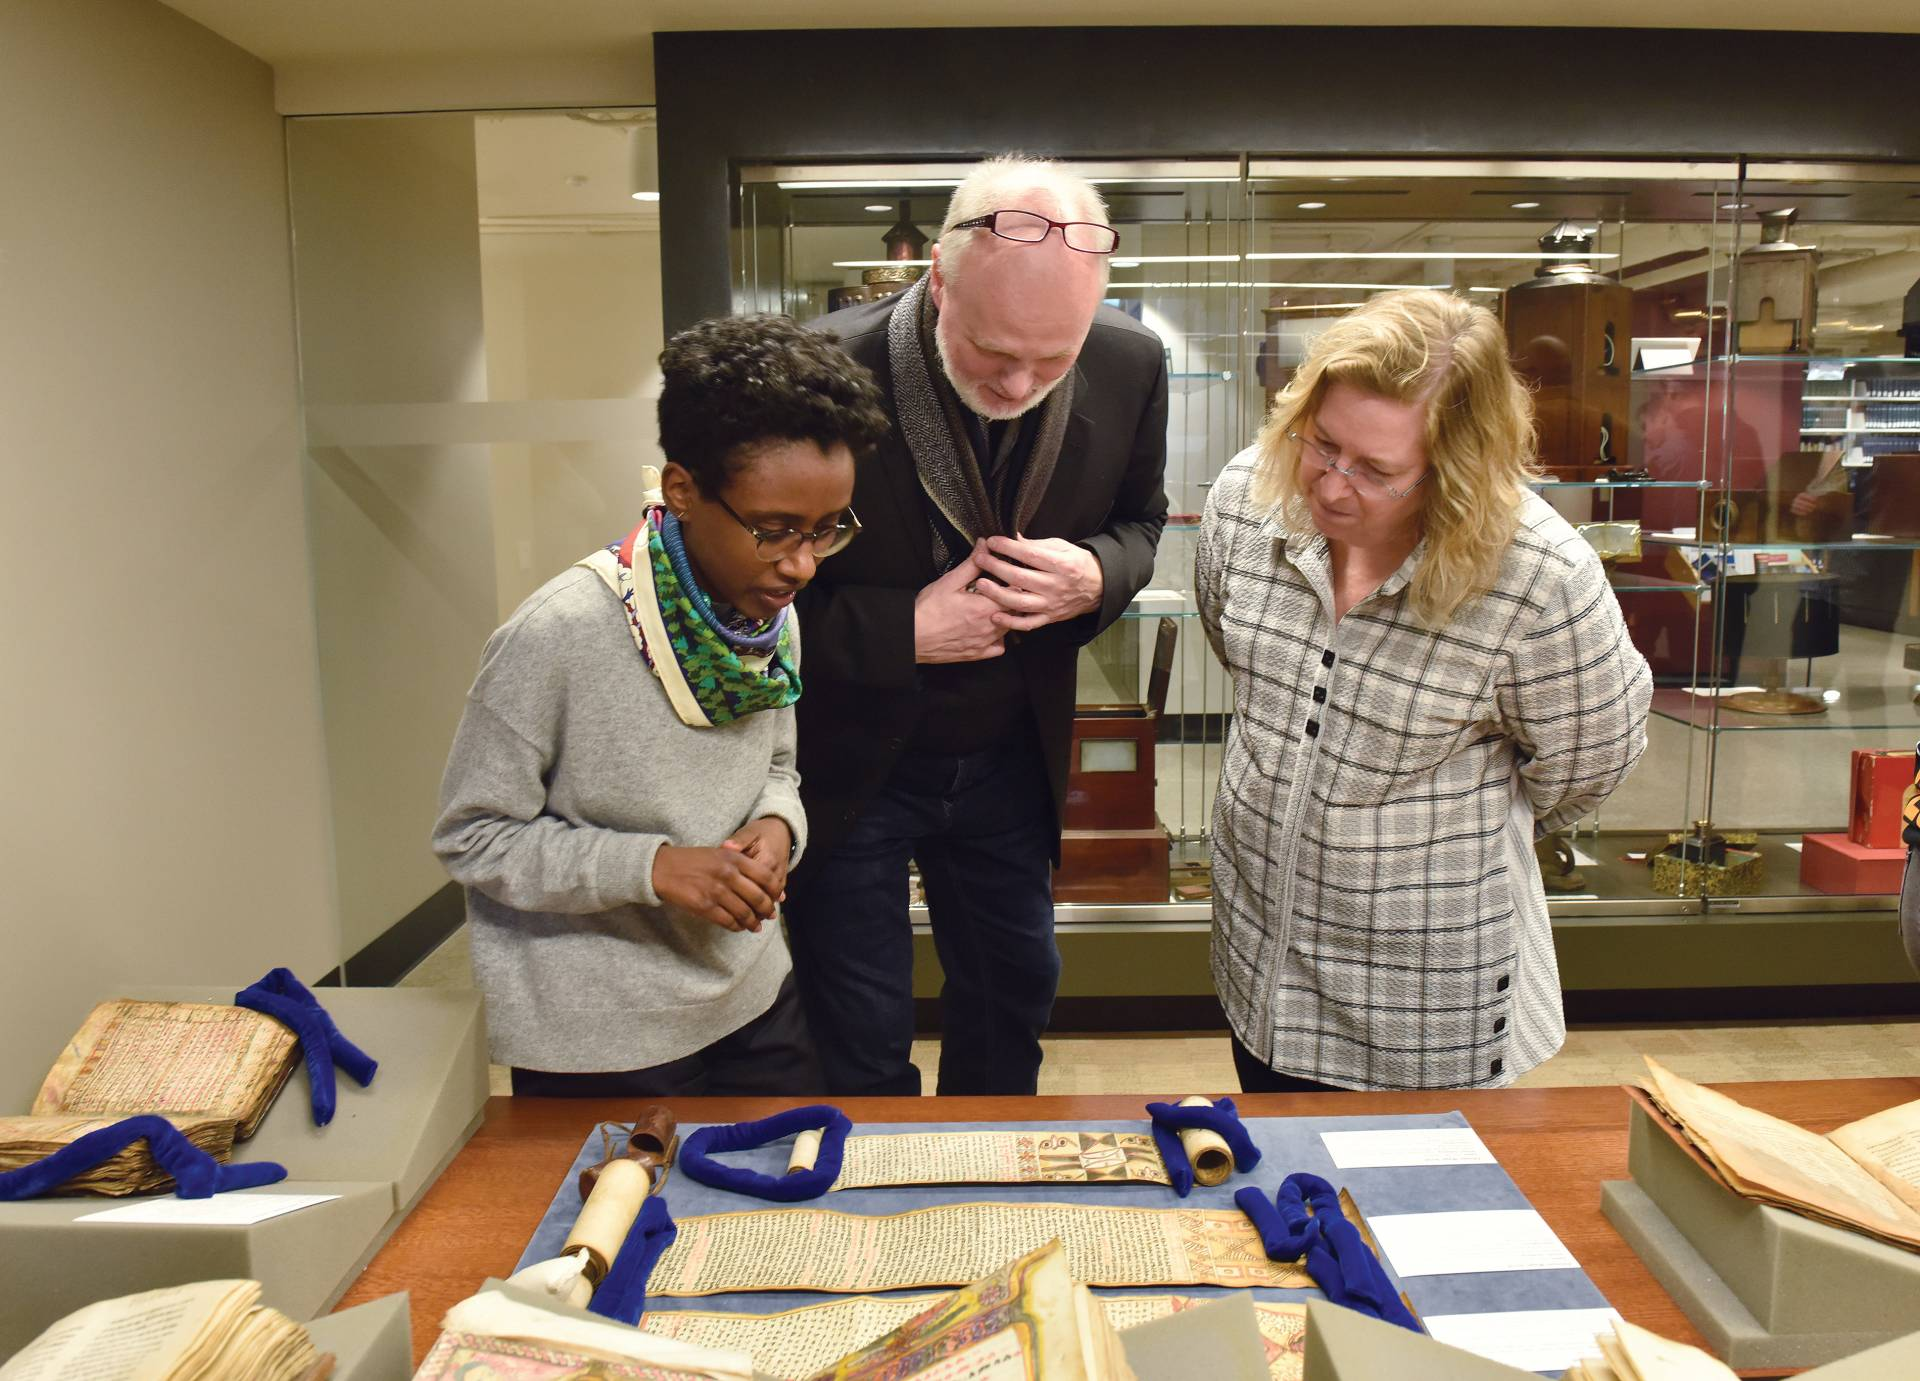 Meseret Oldjira, Michael Kleiner, and Wendy Belcher, looking at and discussing a manuscript on a table display.